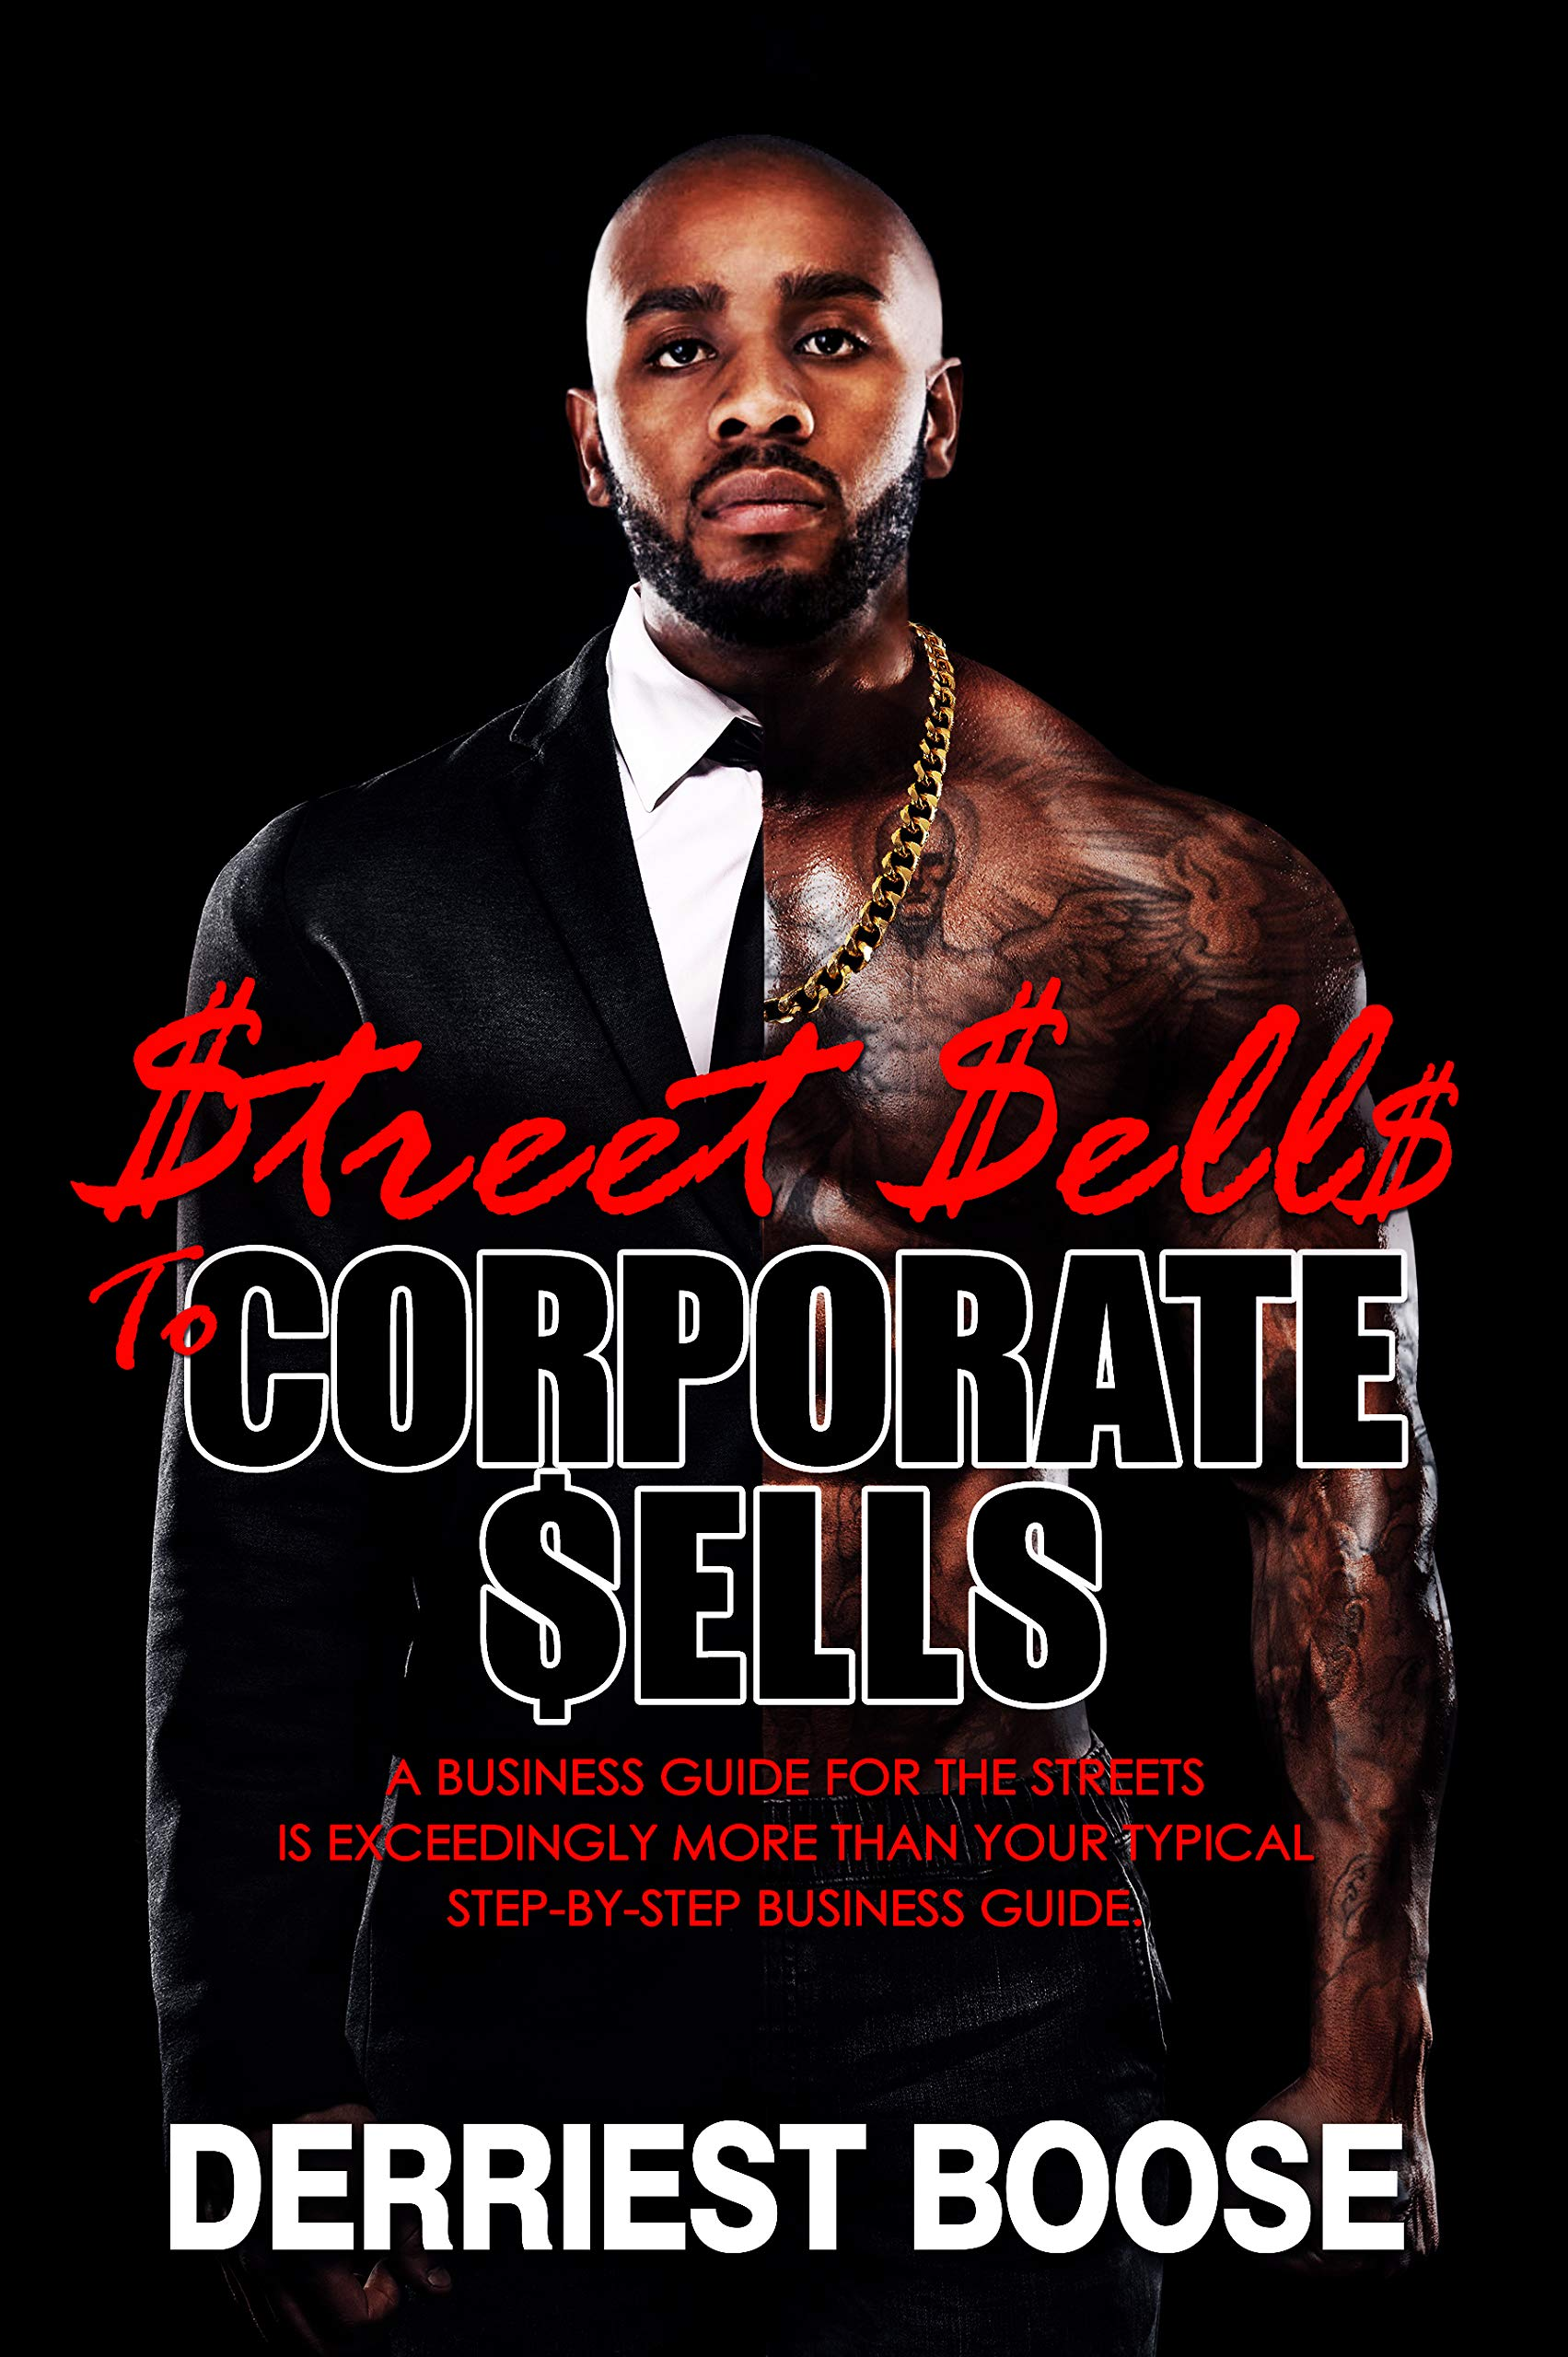 $treet $ell$ to Corporate $ells: A Business Guide for the Streets is exceedingly more than your typical step-by-step business guide.